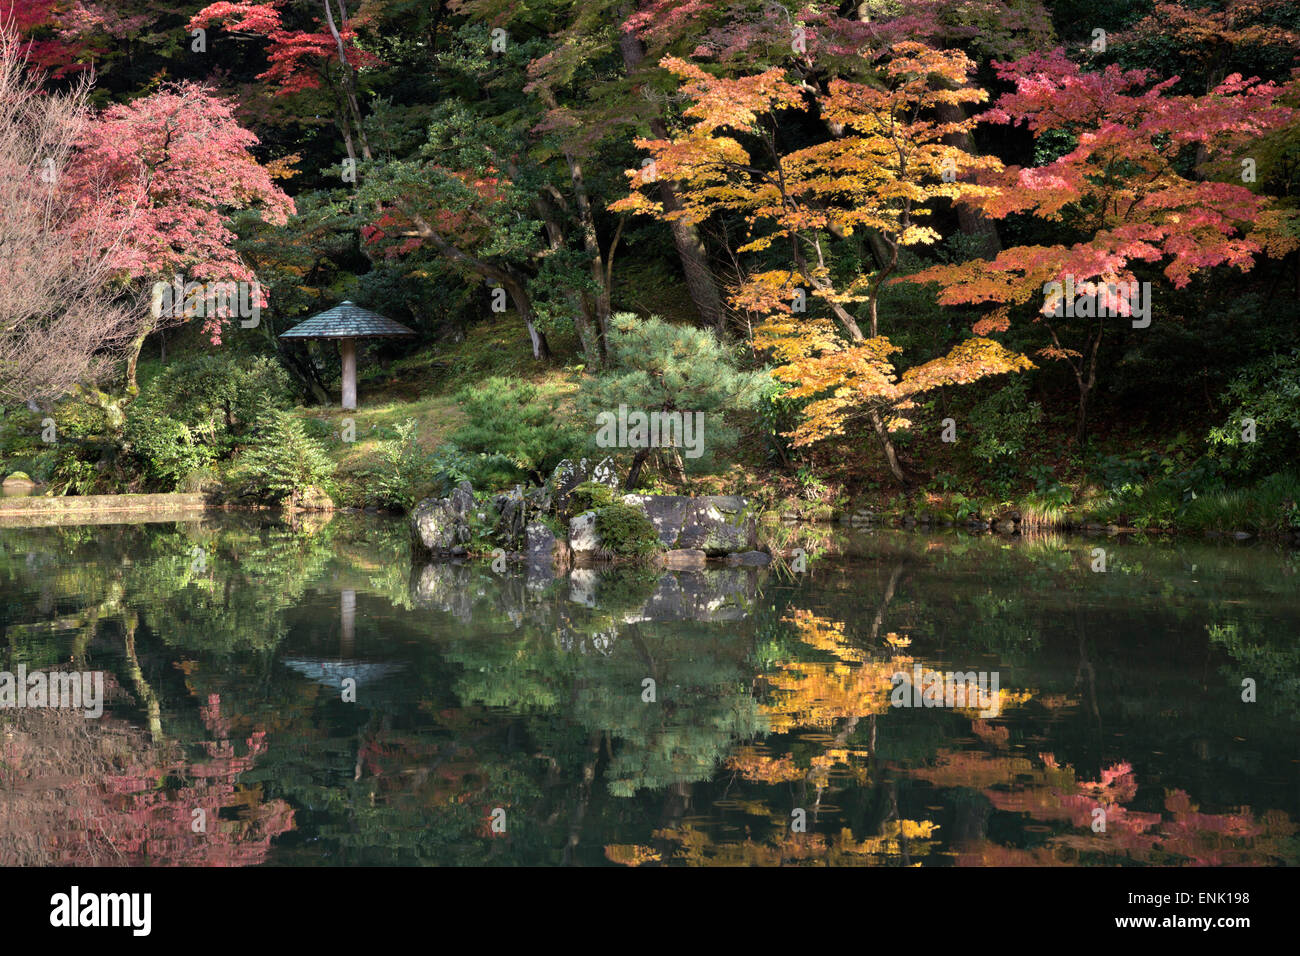 Autumn colours reflected in Hisagoike pond, Kenrokuen Garden, Kanazawa, Ishikawa Prefecture, Central Honshu, Japan, - Stock Image